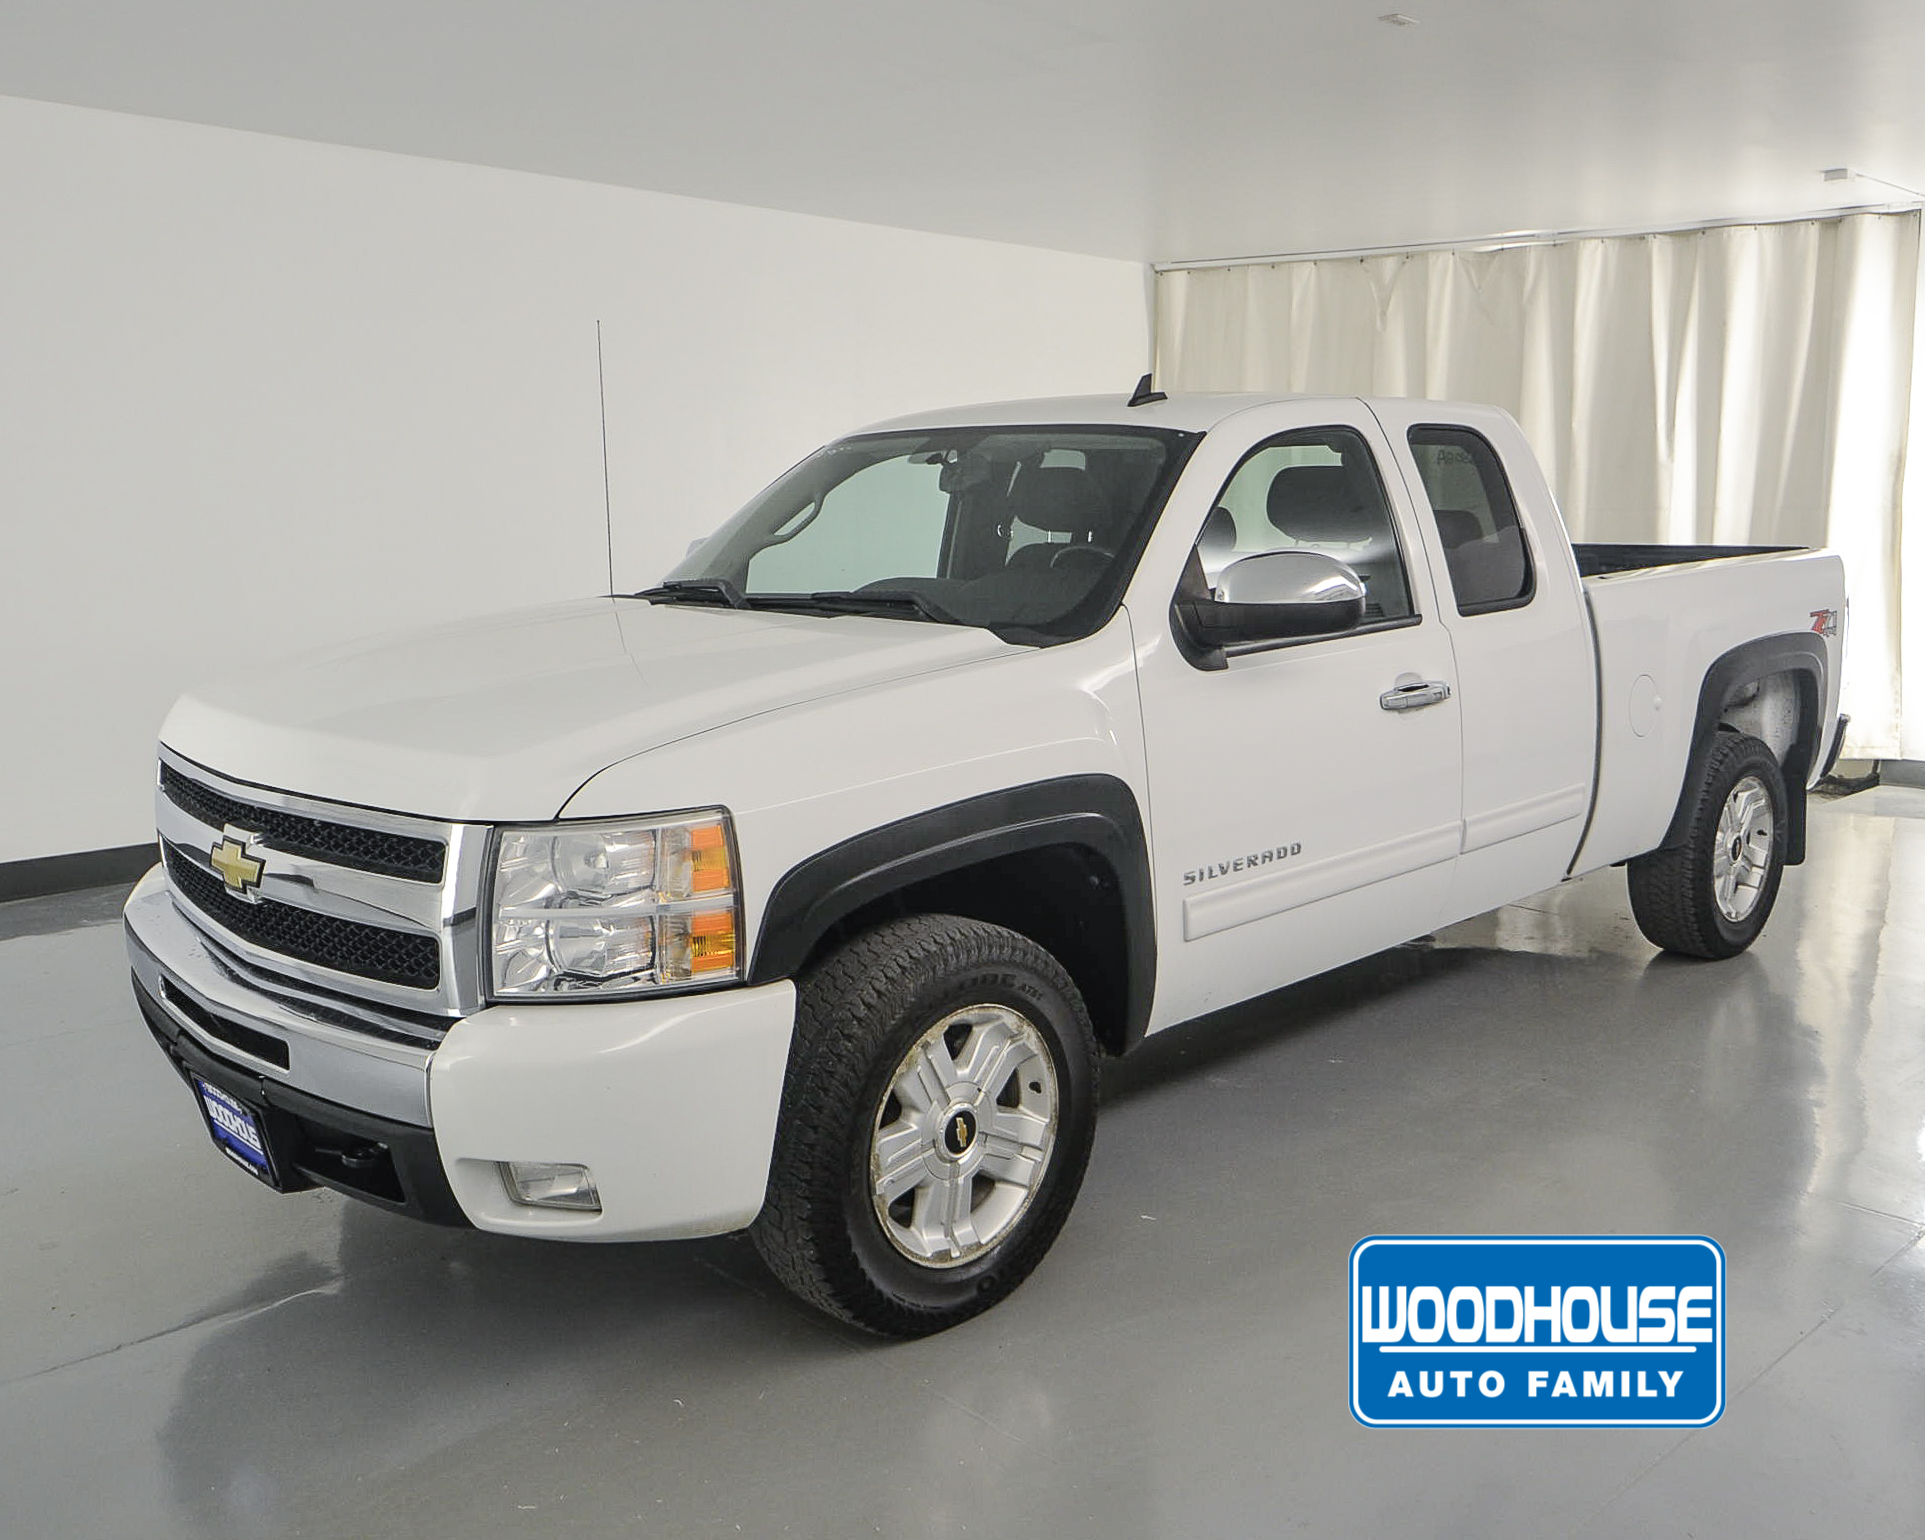 Woodhouse Used 2010 Chevrolet Silverado 1500 For Sale Chevy Buick